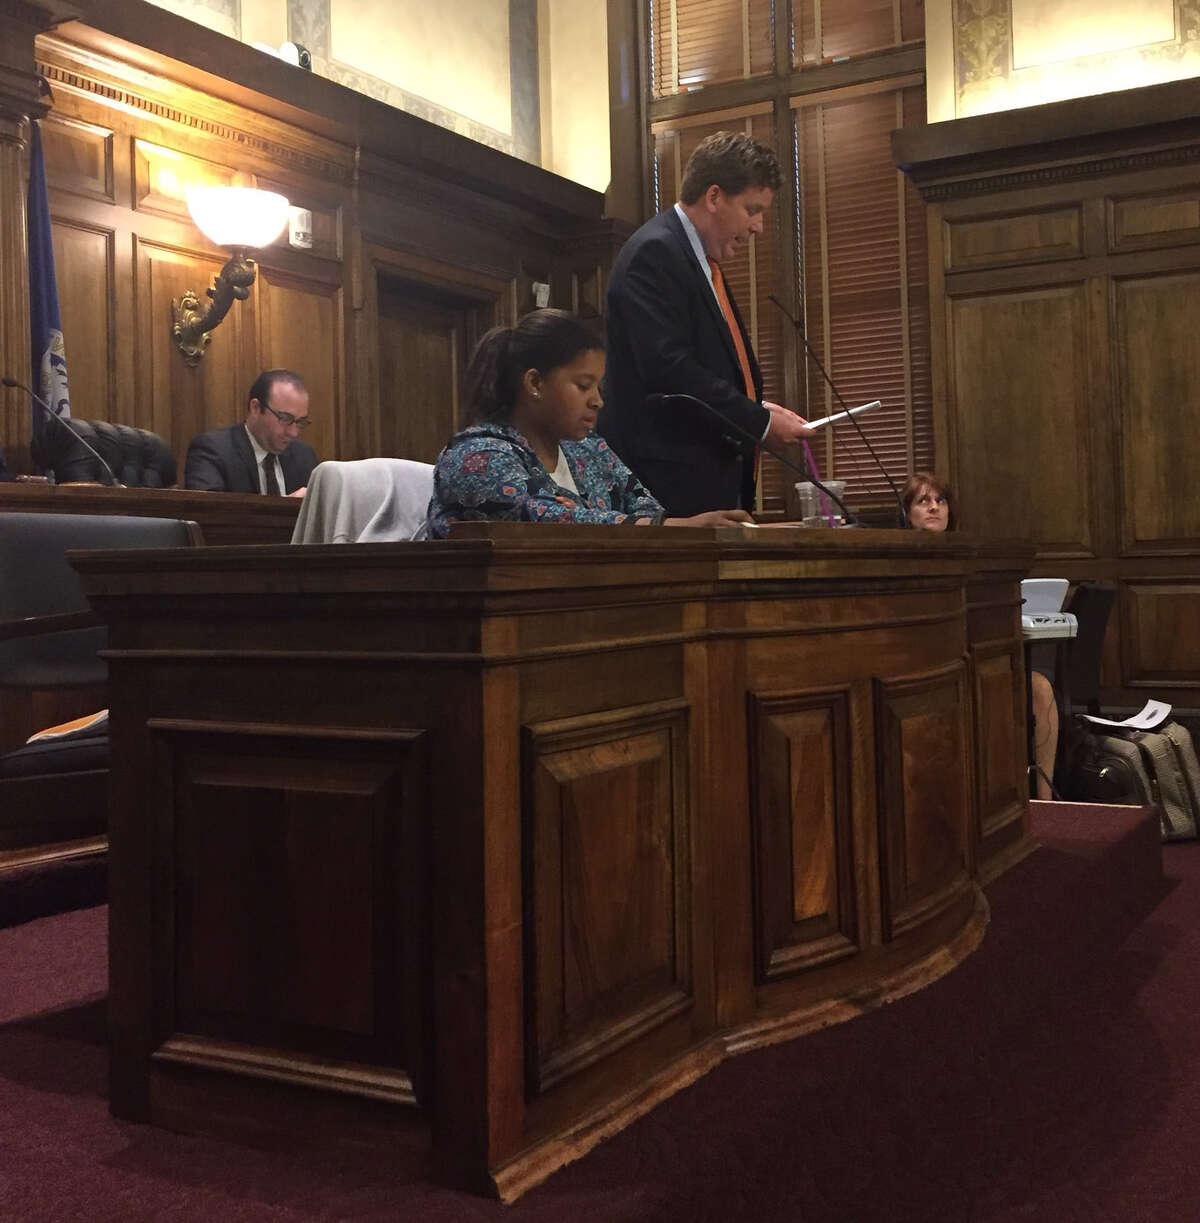 Capital Region Chamber President and CEO Mark Eagan presents the chamber's case against the proposed paid sick leave law during a public hearing at the Albany County Legislature on Tuesday, May 29, 2018. (Photo by Amanda Fries)